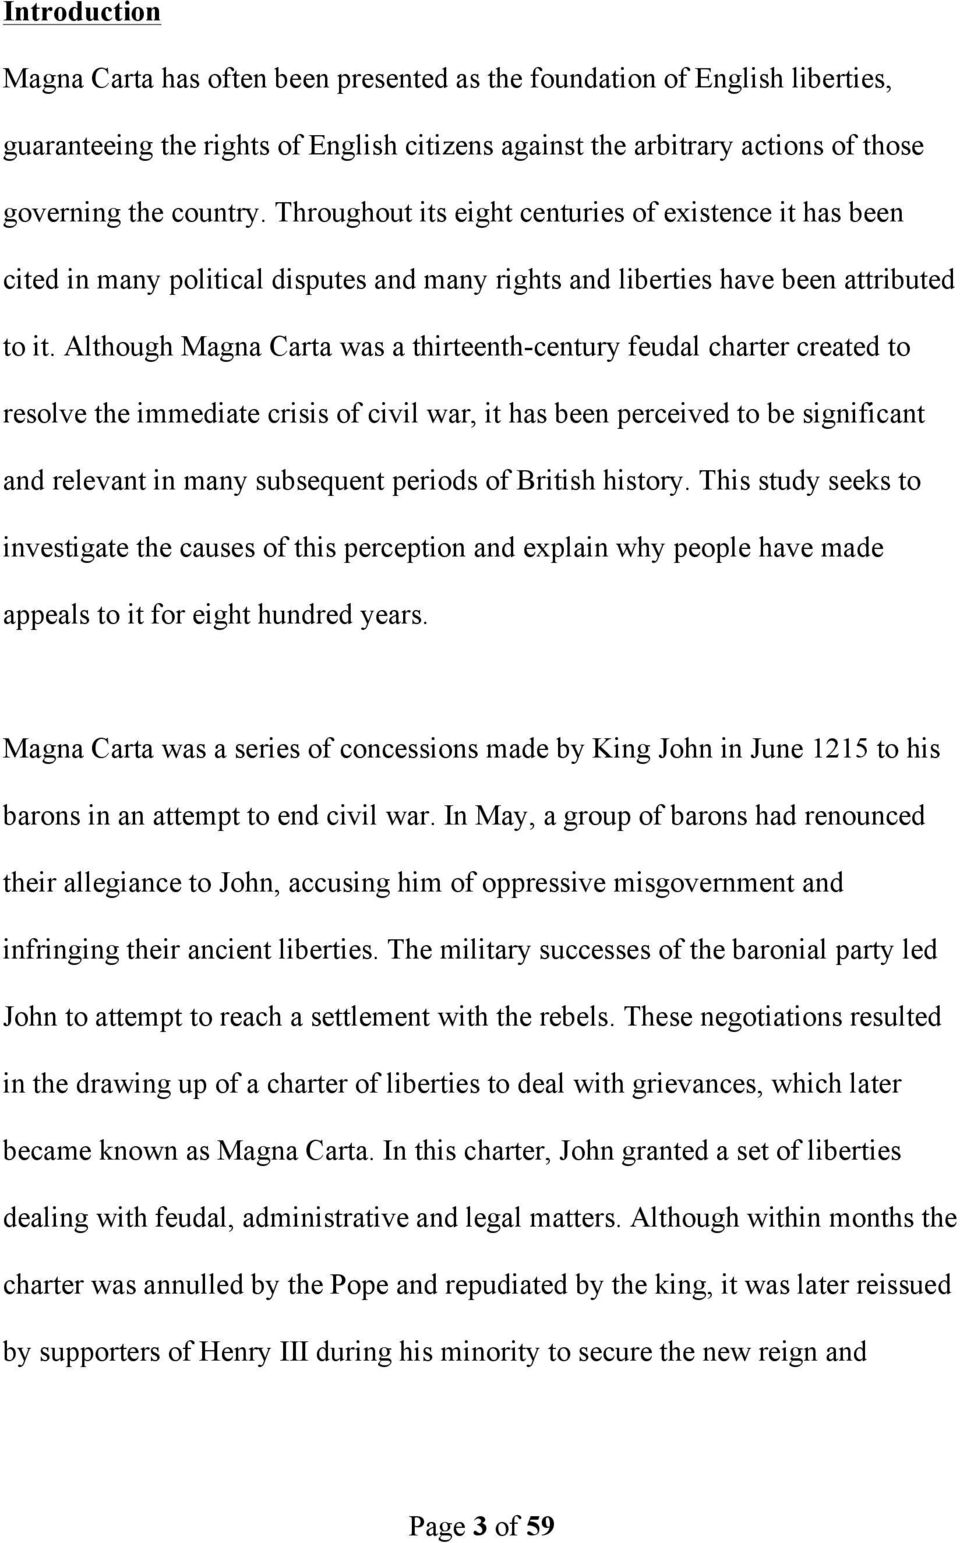 Although Magna Carta was a thirteenth-century feudal charter created to resolve the immediate crisis of civil war, it has been perceived to be significant and relevant in many subsequent periods of